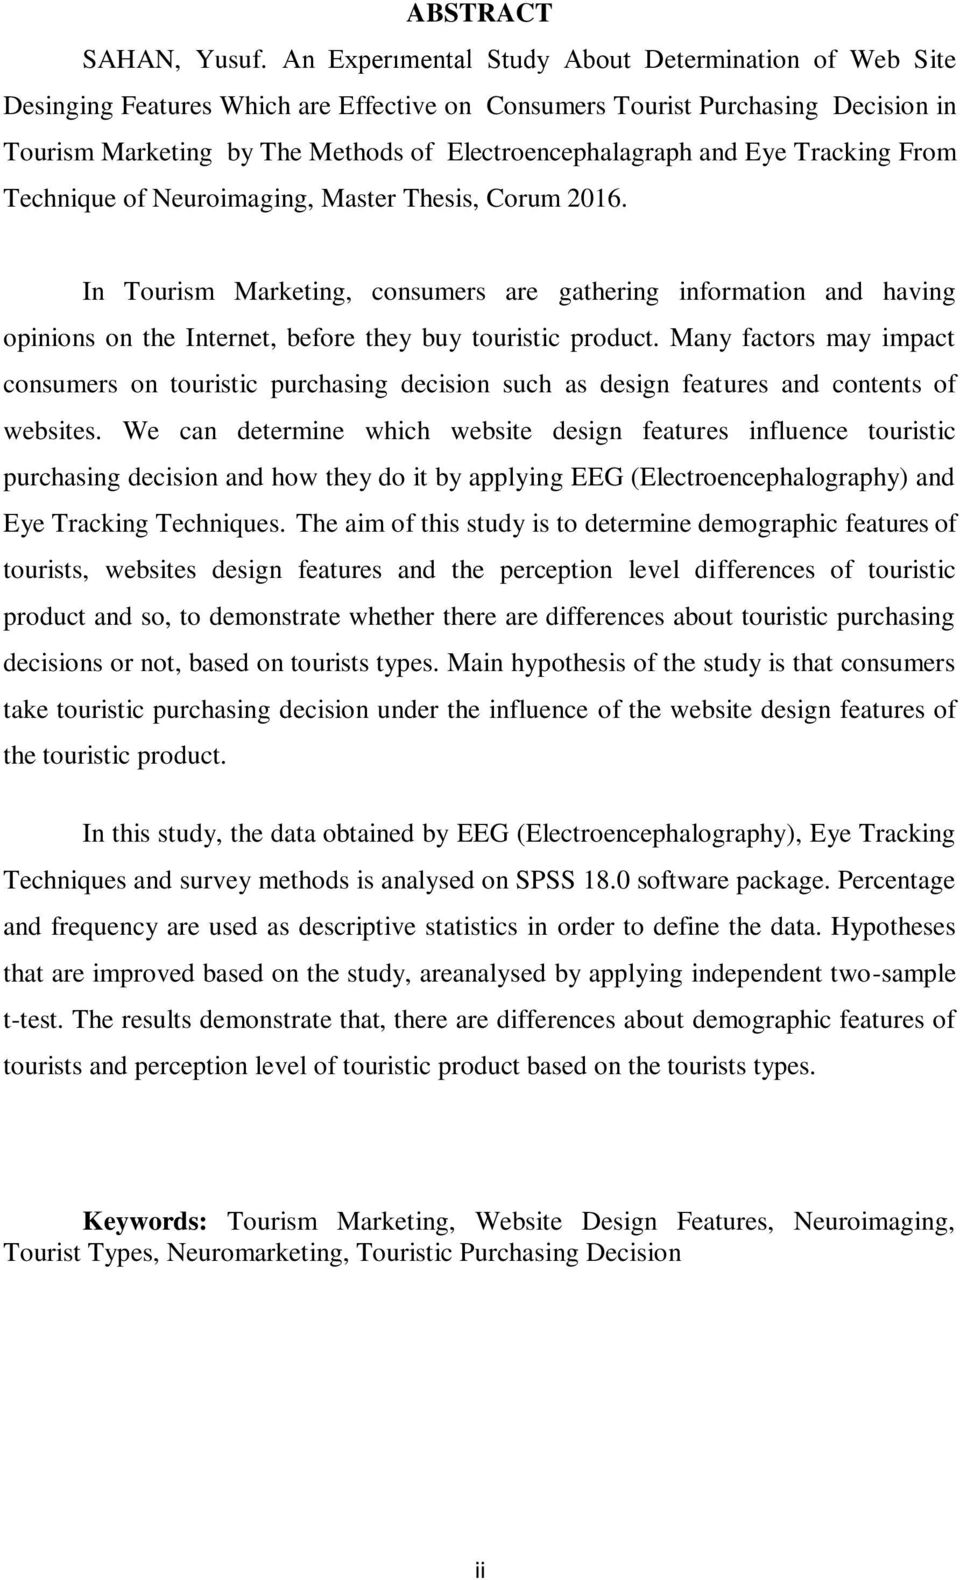 Eye Tracking From Technique of Neuroimaging, Master Thesis, Corum 2016.